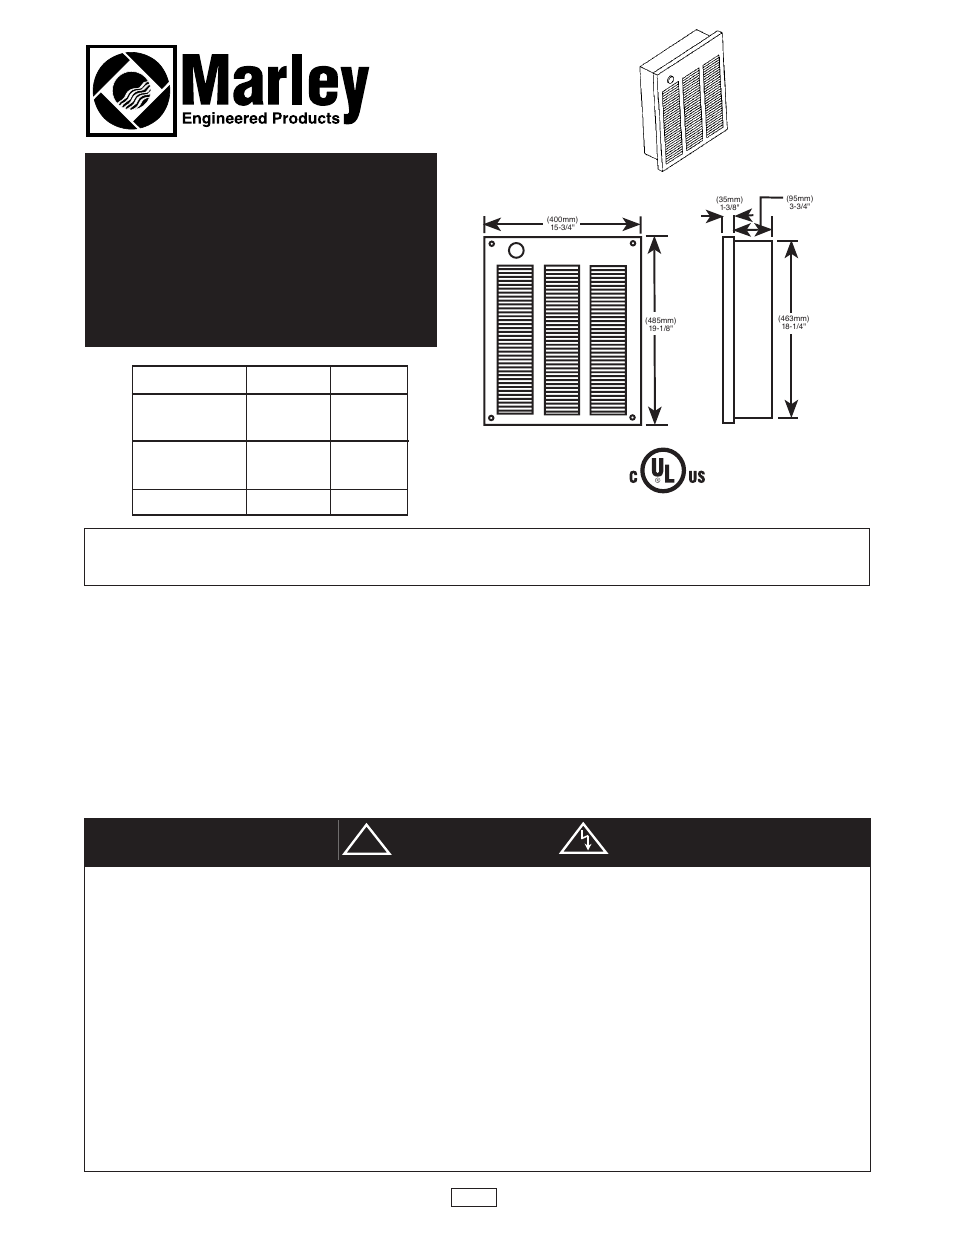 Qmark lfk series wall heater user manual 4 pages sciox Image collections